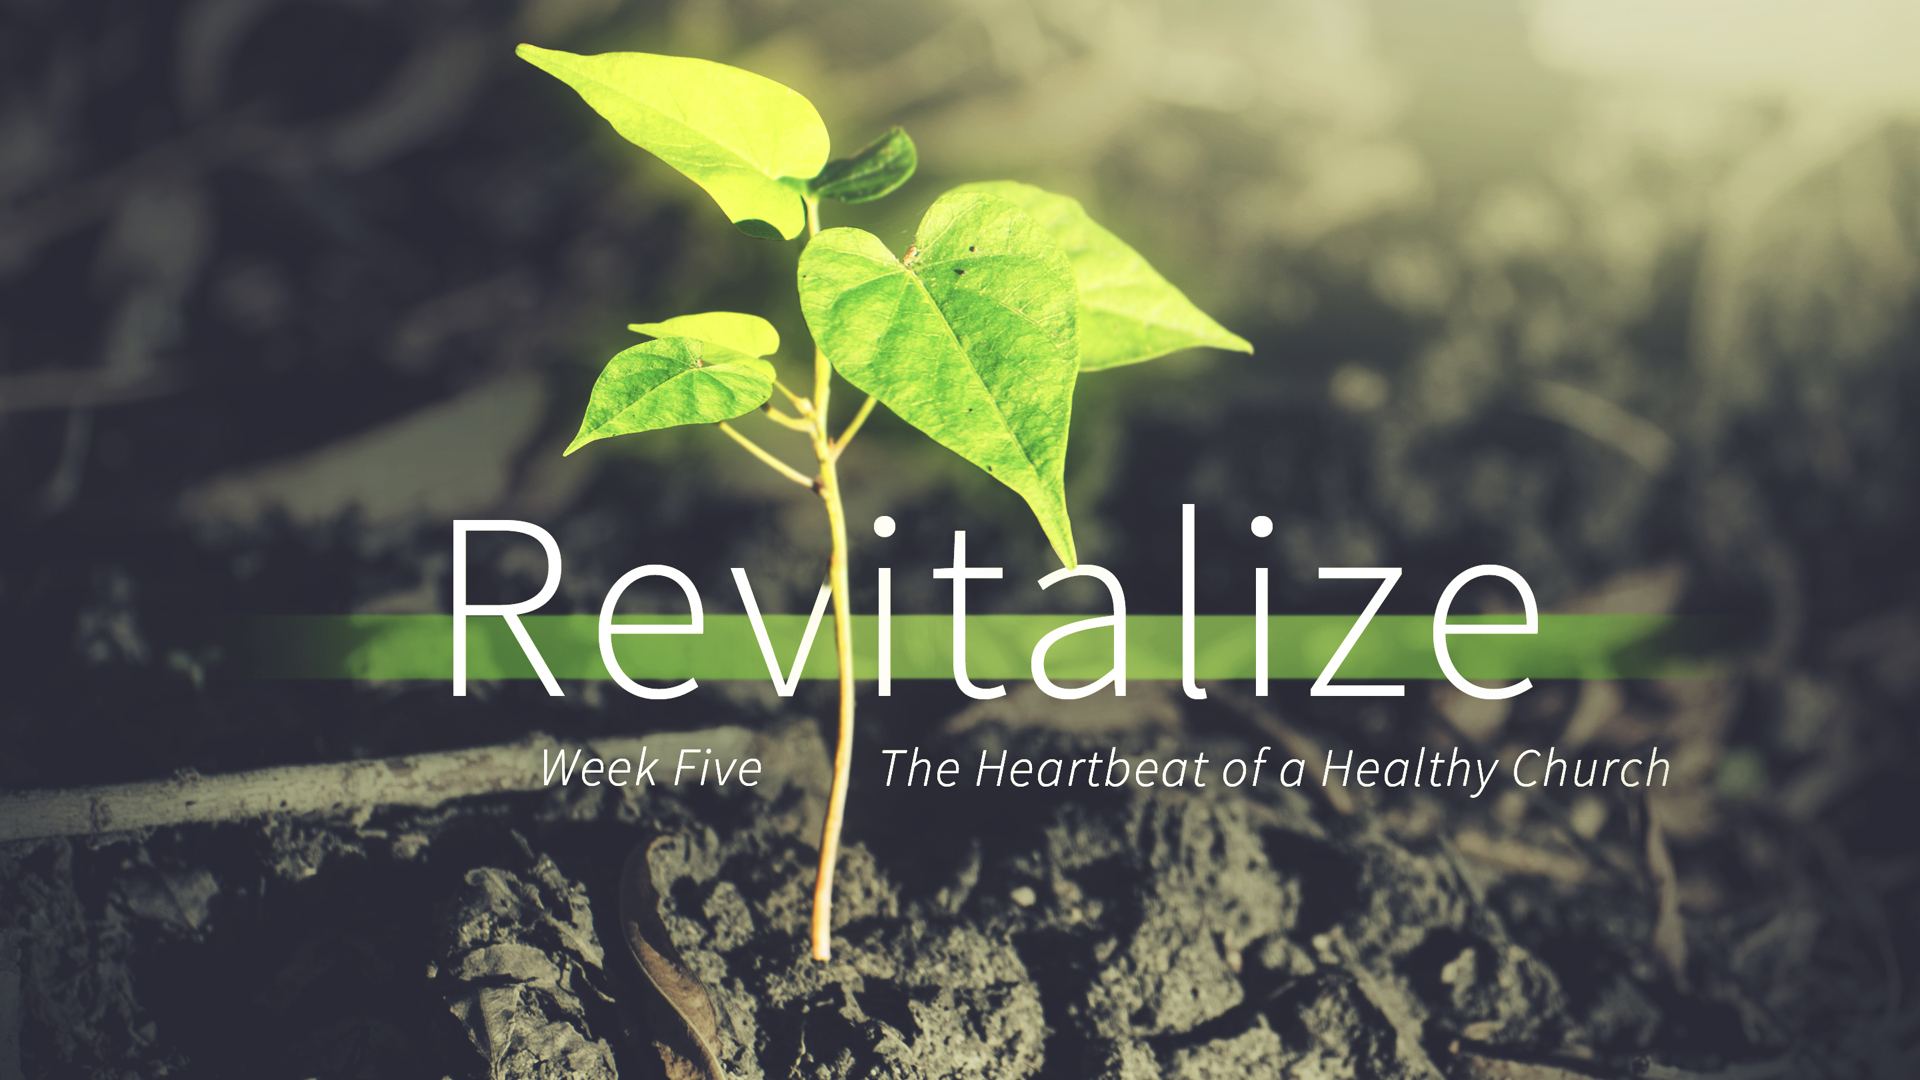 Revitalize - Week 5 - The Heartbeat of a Healthy Church copy.020.jpeg